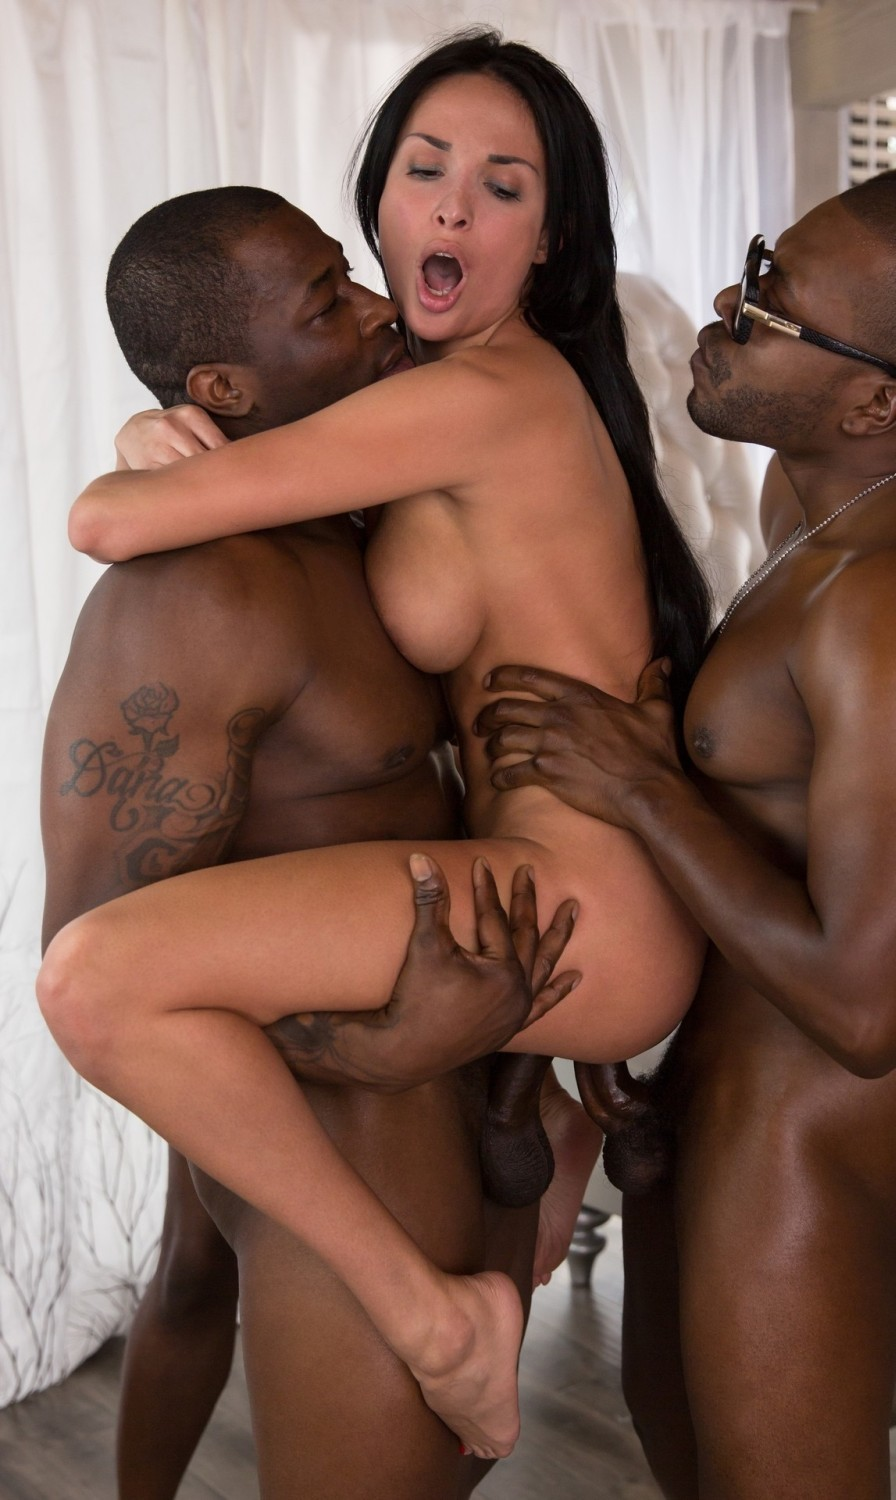 The Best Black Porn Ever